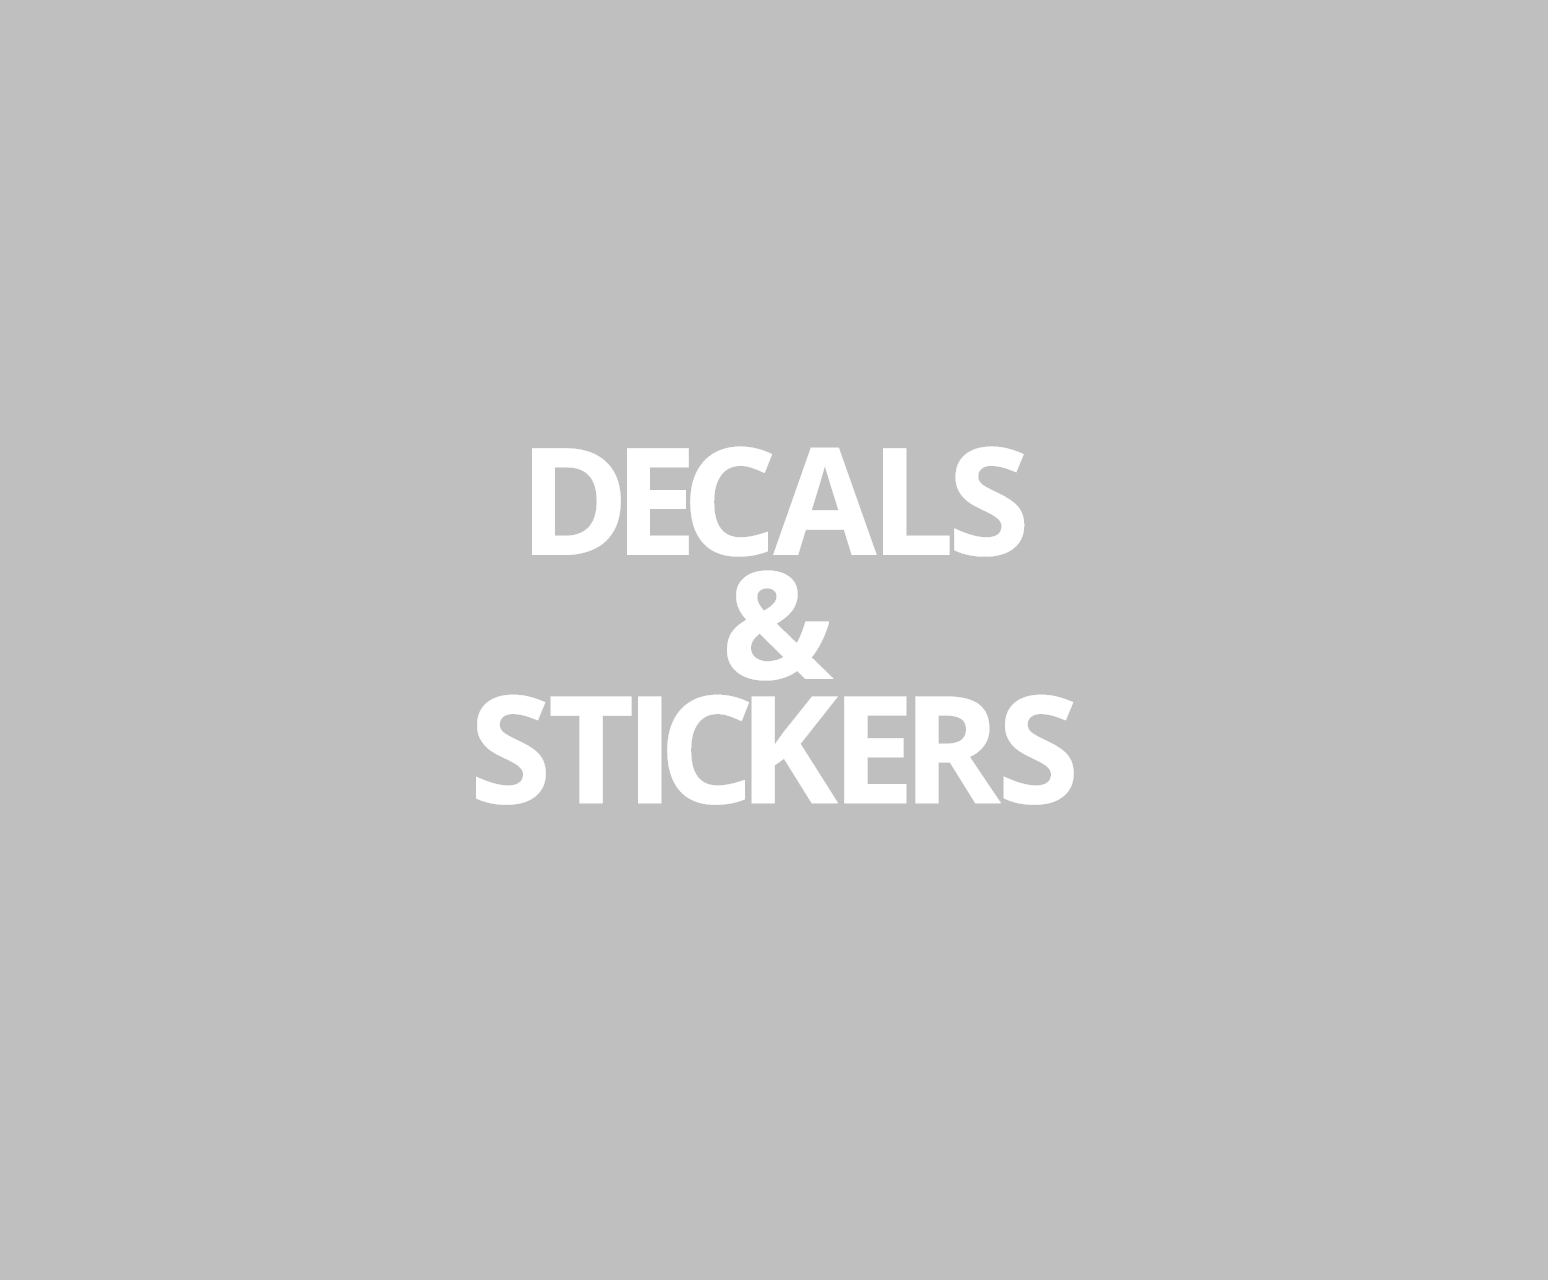 DECALS-AND-STICKERS-TEXT-1